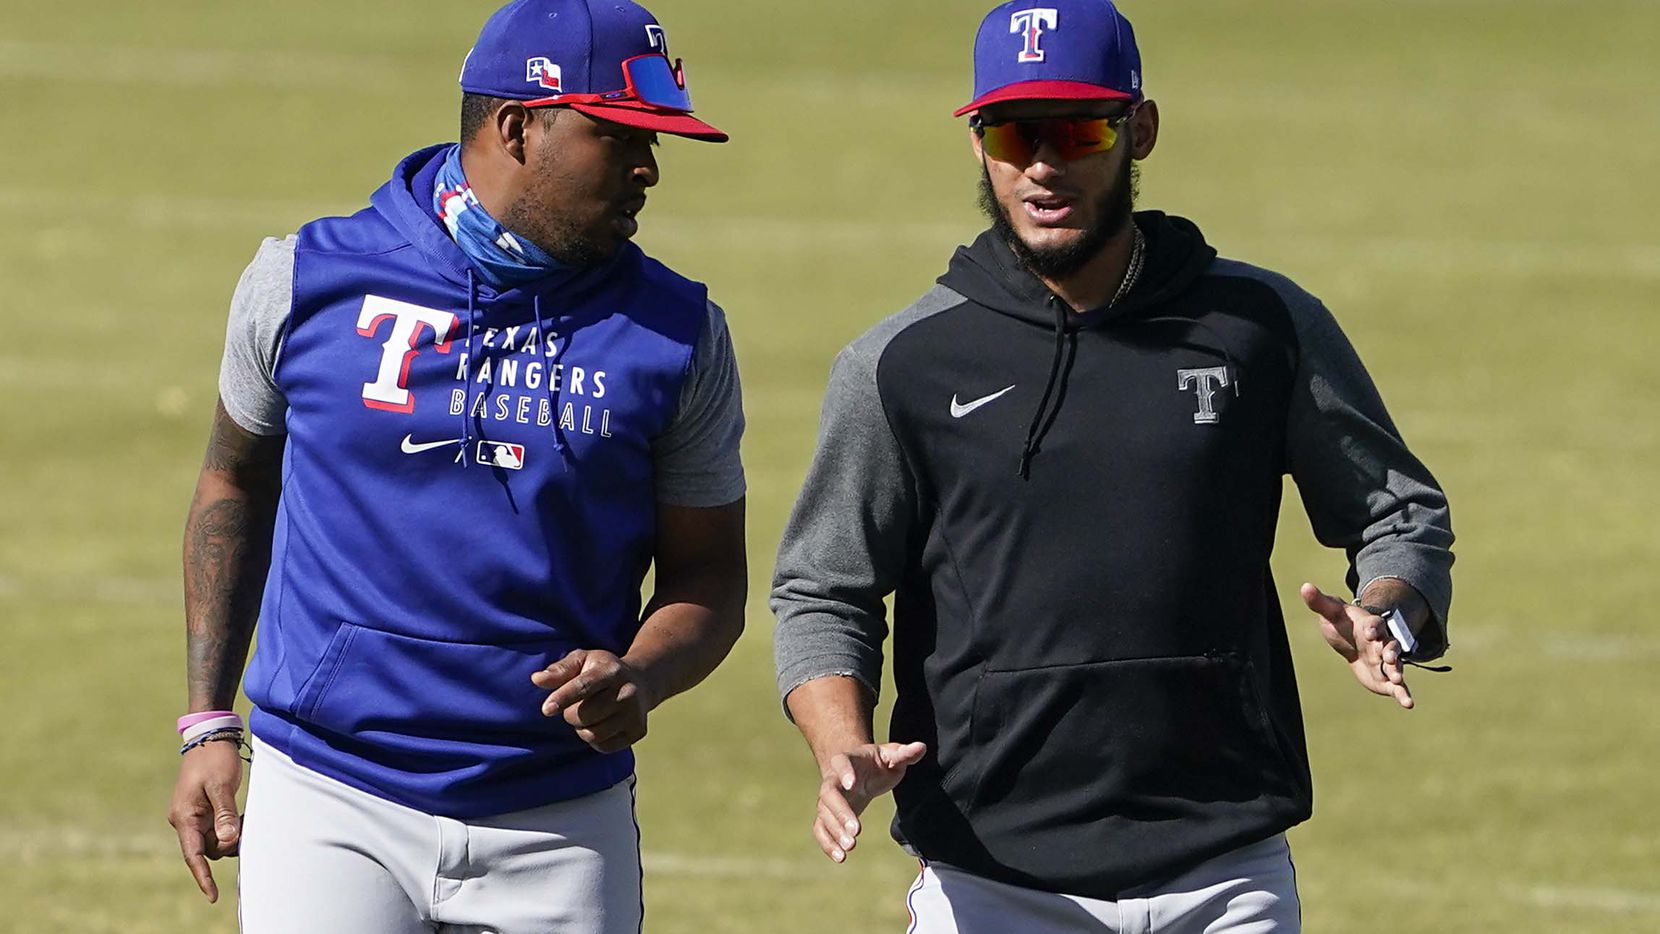 Rangers pitchers Jonathan Hernández (right) and Alex Speas are pictured during a workout at the team's spring training facility on Saturday, March 6, 2021, in Surprise, Ariz.